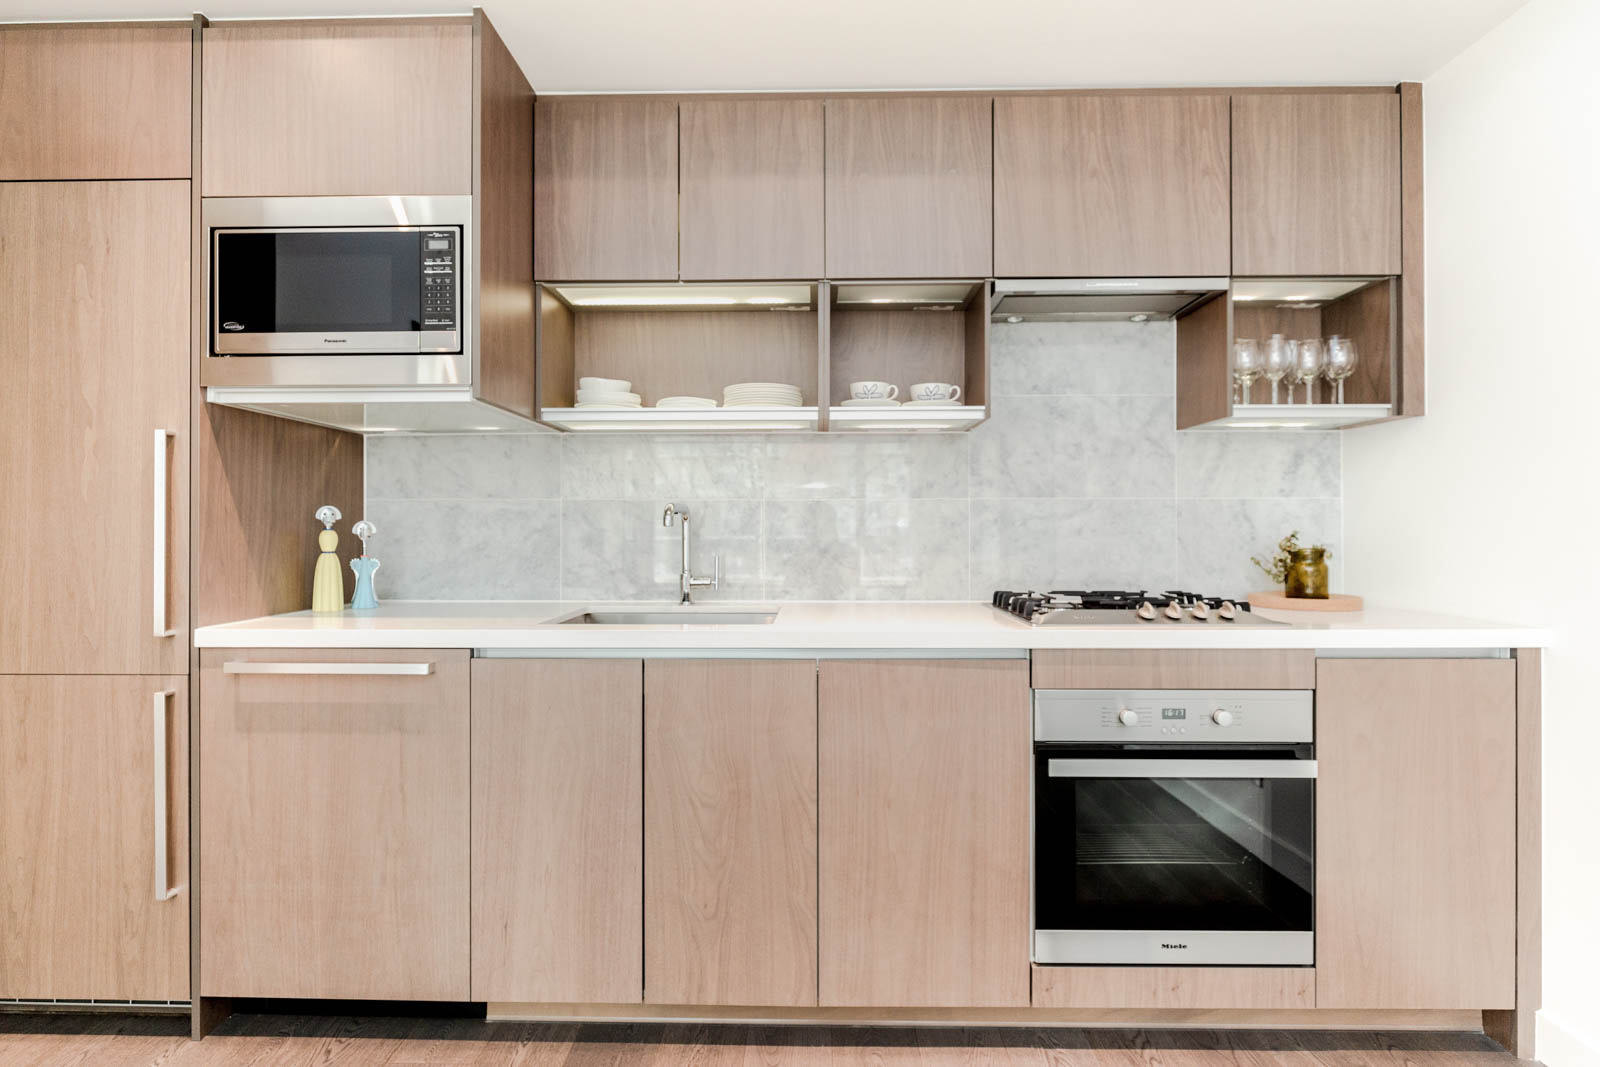 Light Wood Cabinetry at 68 Smithe Vancouver Rental Home